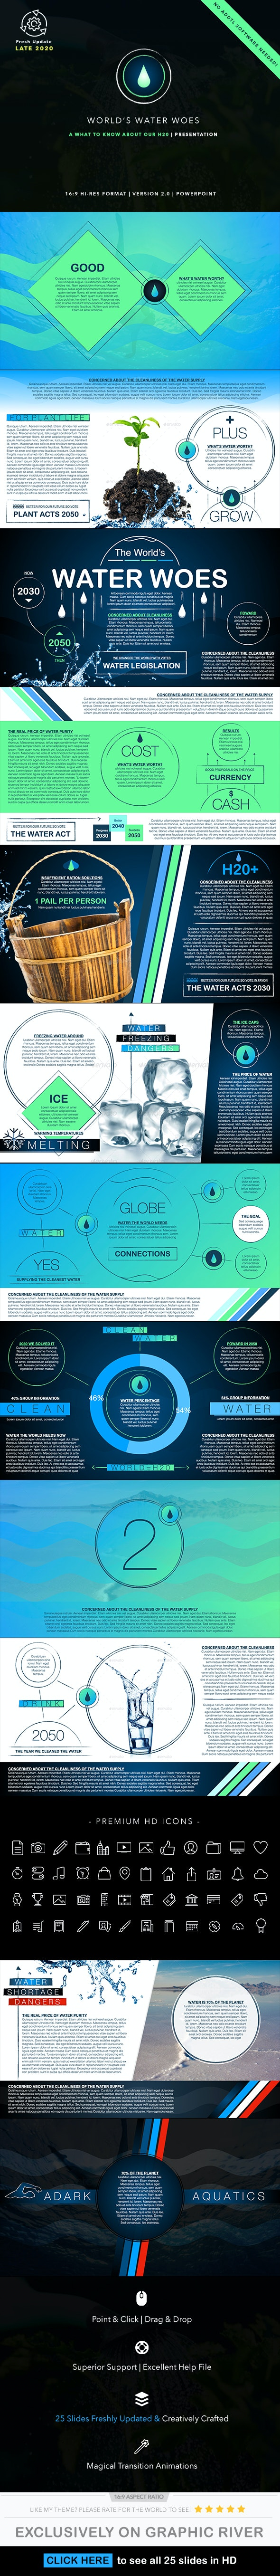 World's Water Woes PowerPoint Presentation - Nature PowerPoint Templates